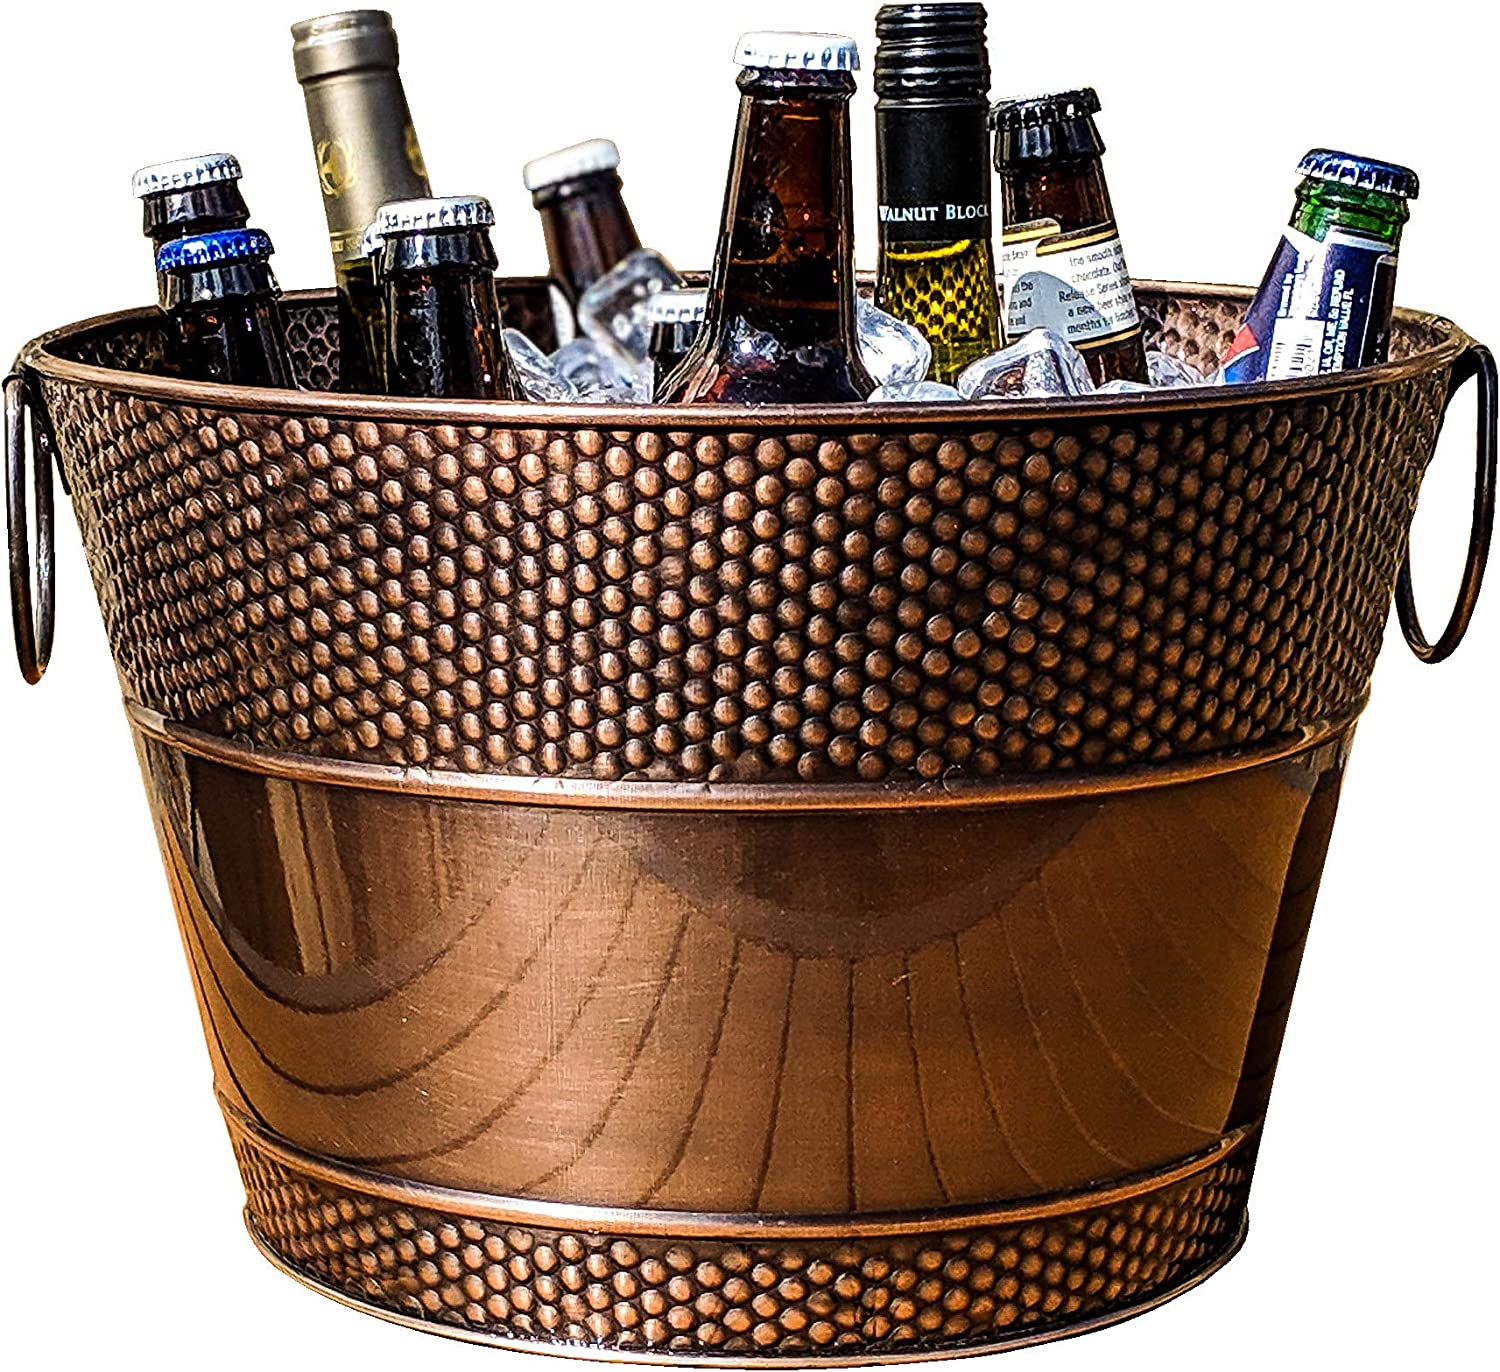 BREKX Old Tavern Copper Finish Beverage Bucket & Wine Chiller- 15 Quart